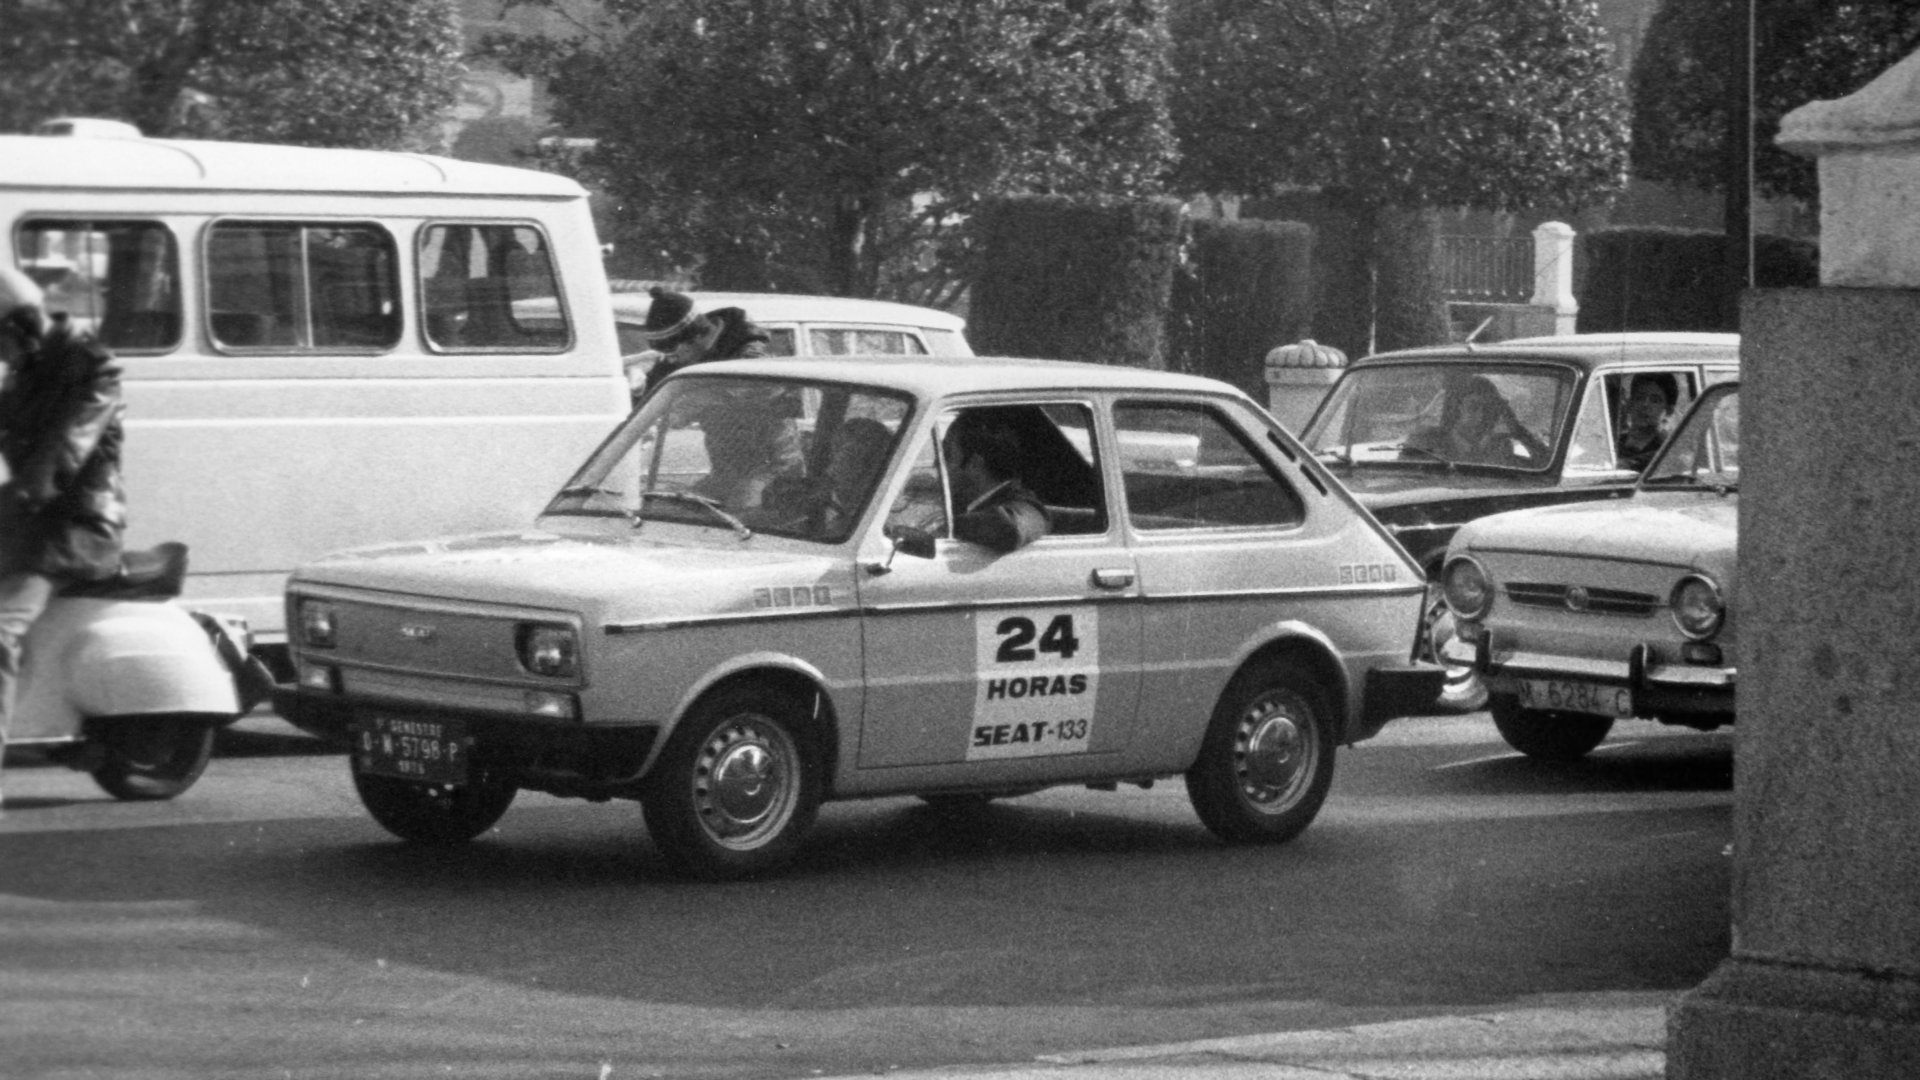 SEAT 133 24 horas 1976